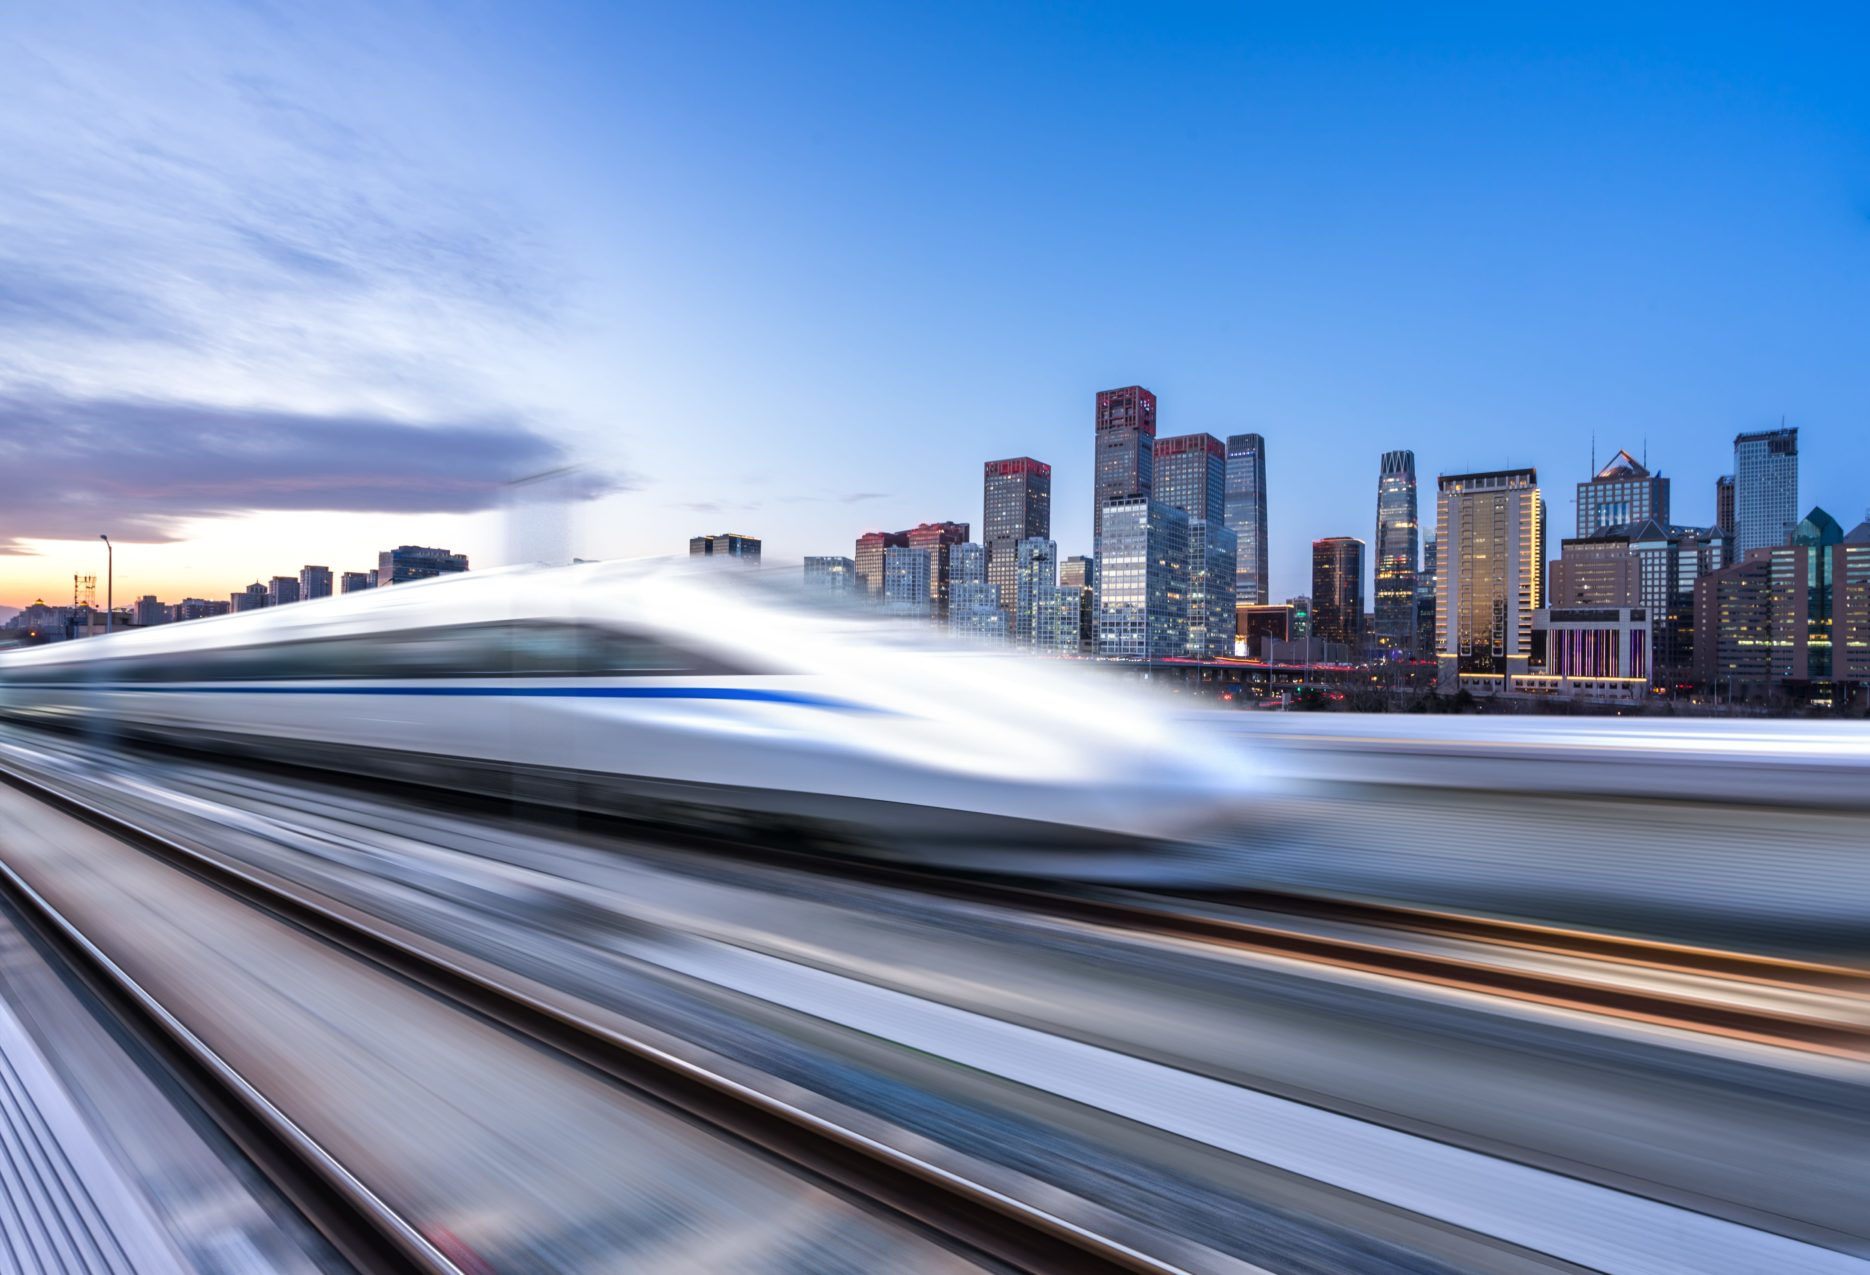 China's High speed rail network. Credit: Adobe Stock